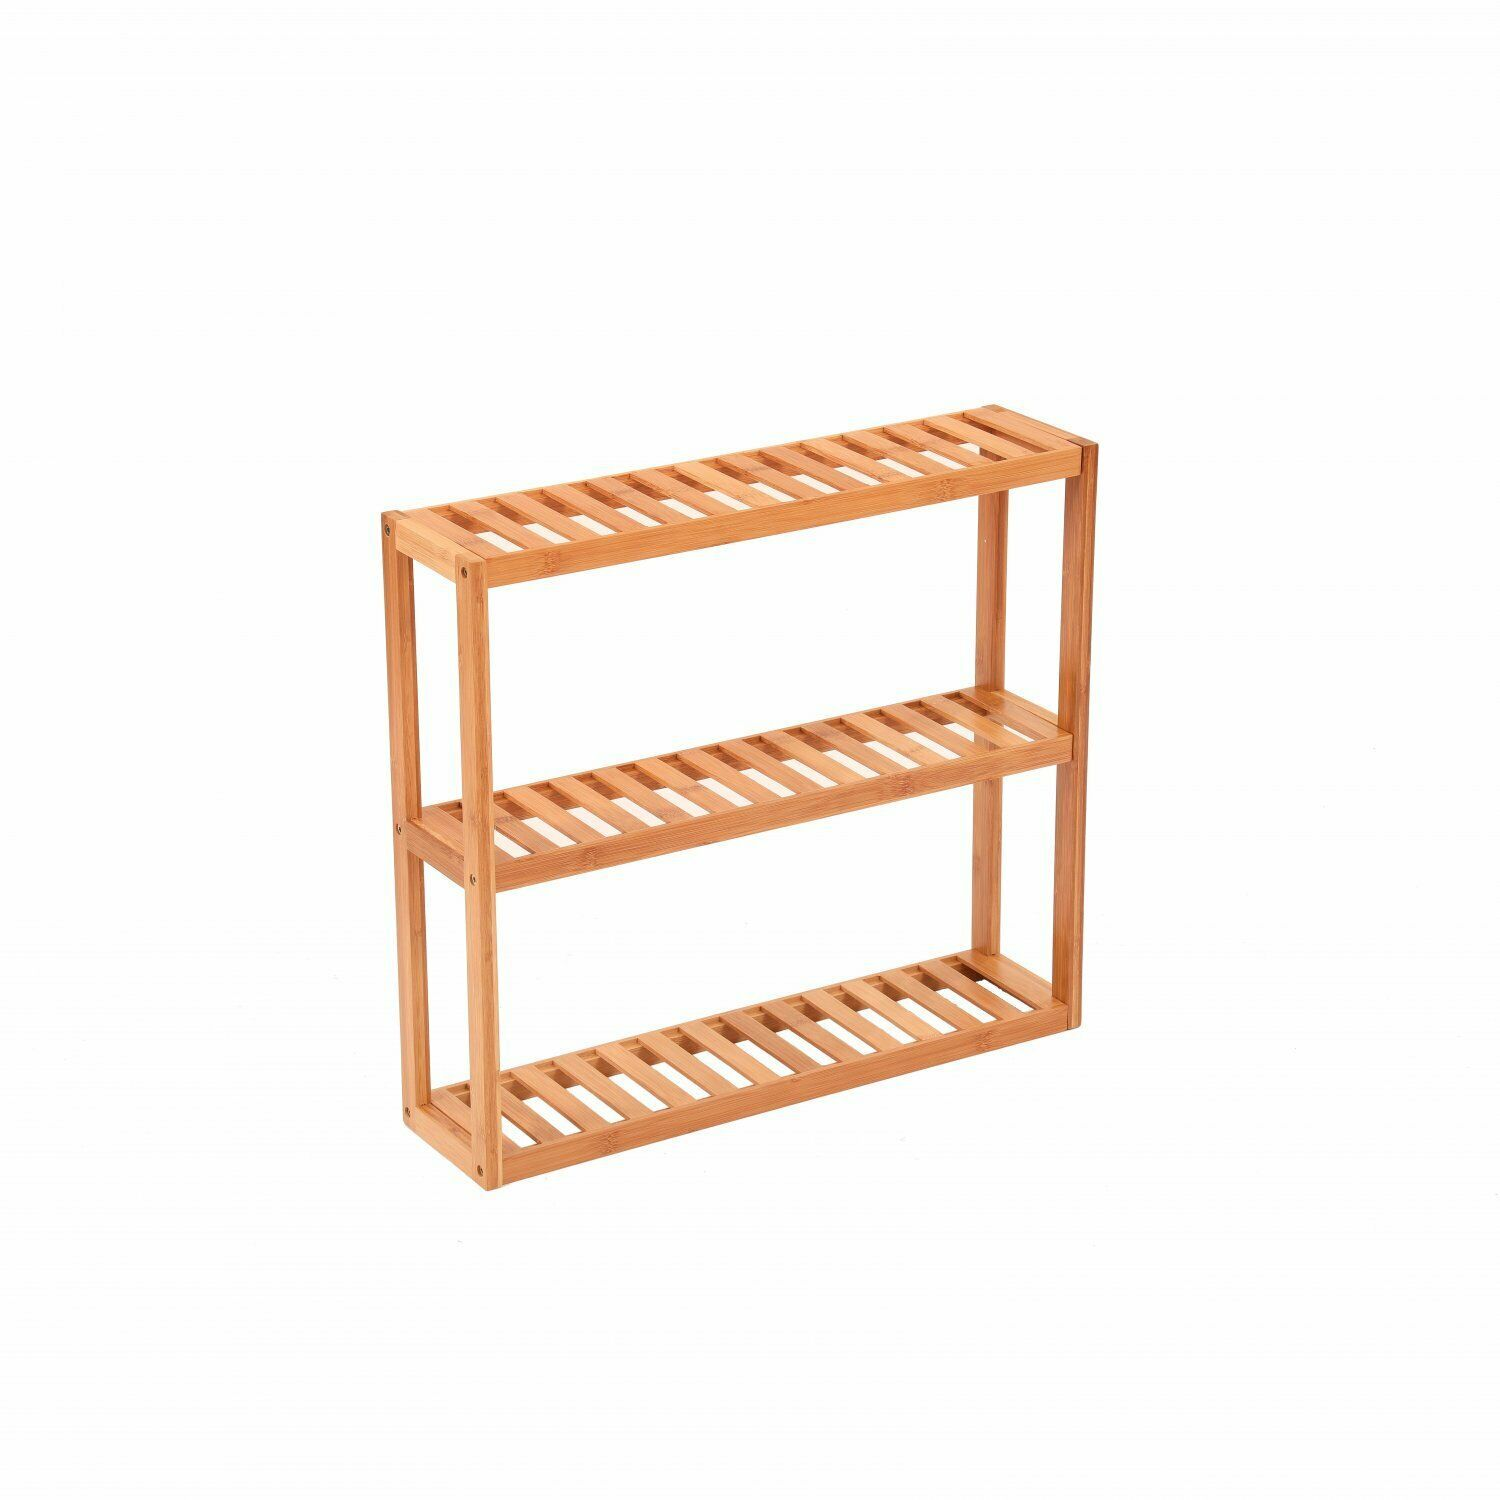 NEW! 3 Tier Wooden Bamboo Bathroom Kitchen Wall Mounted